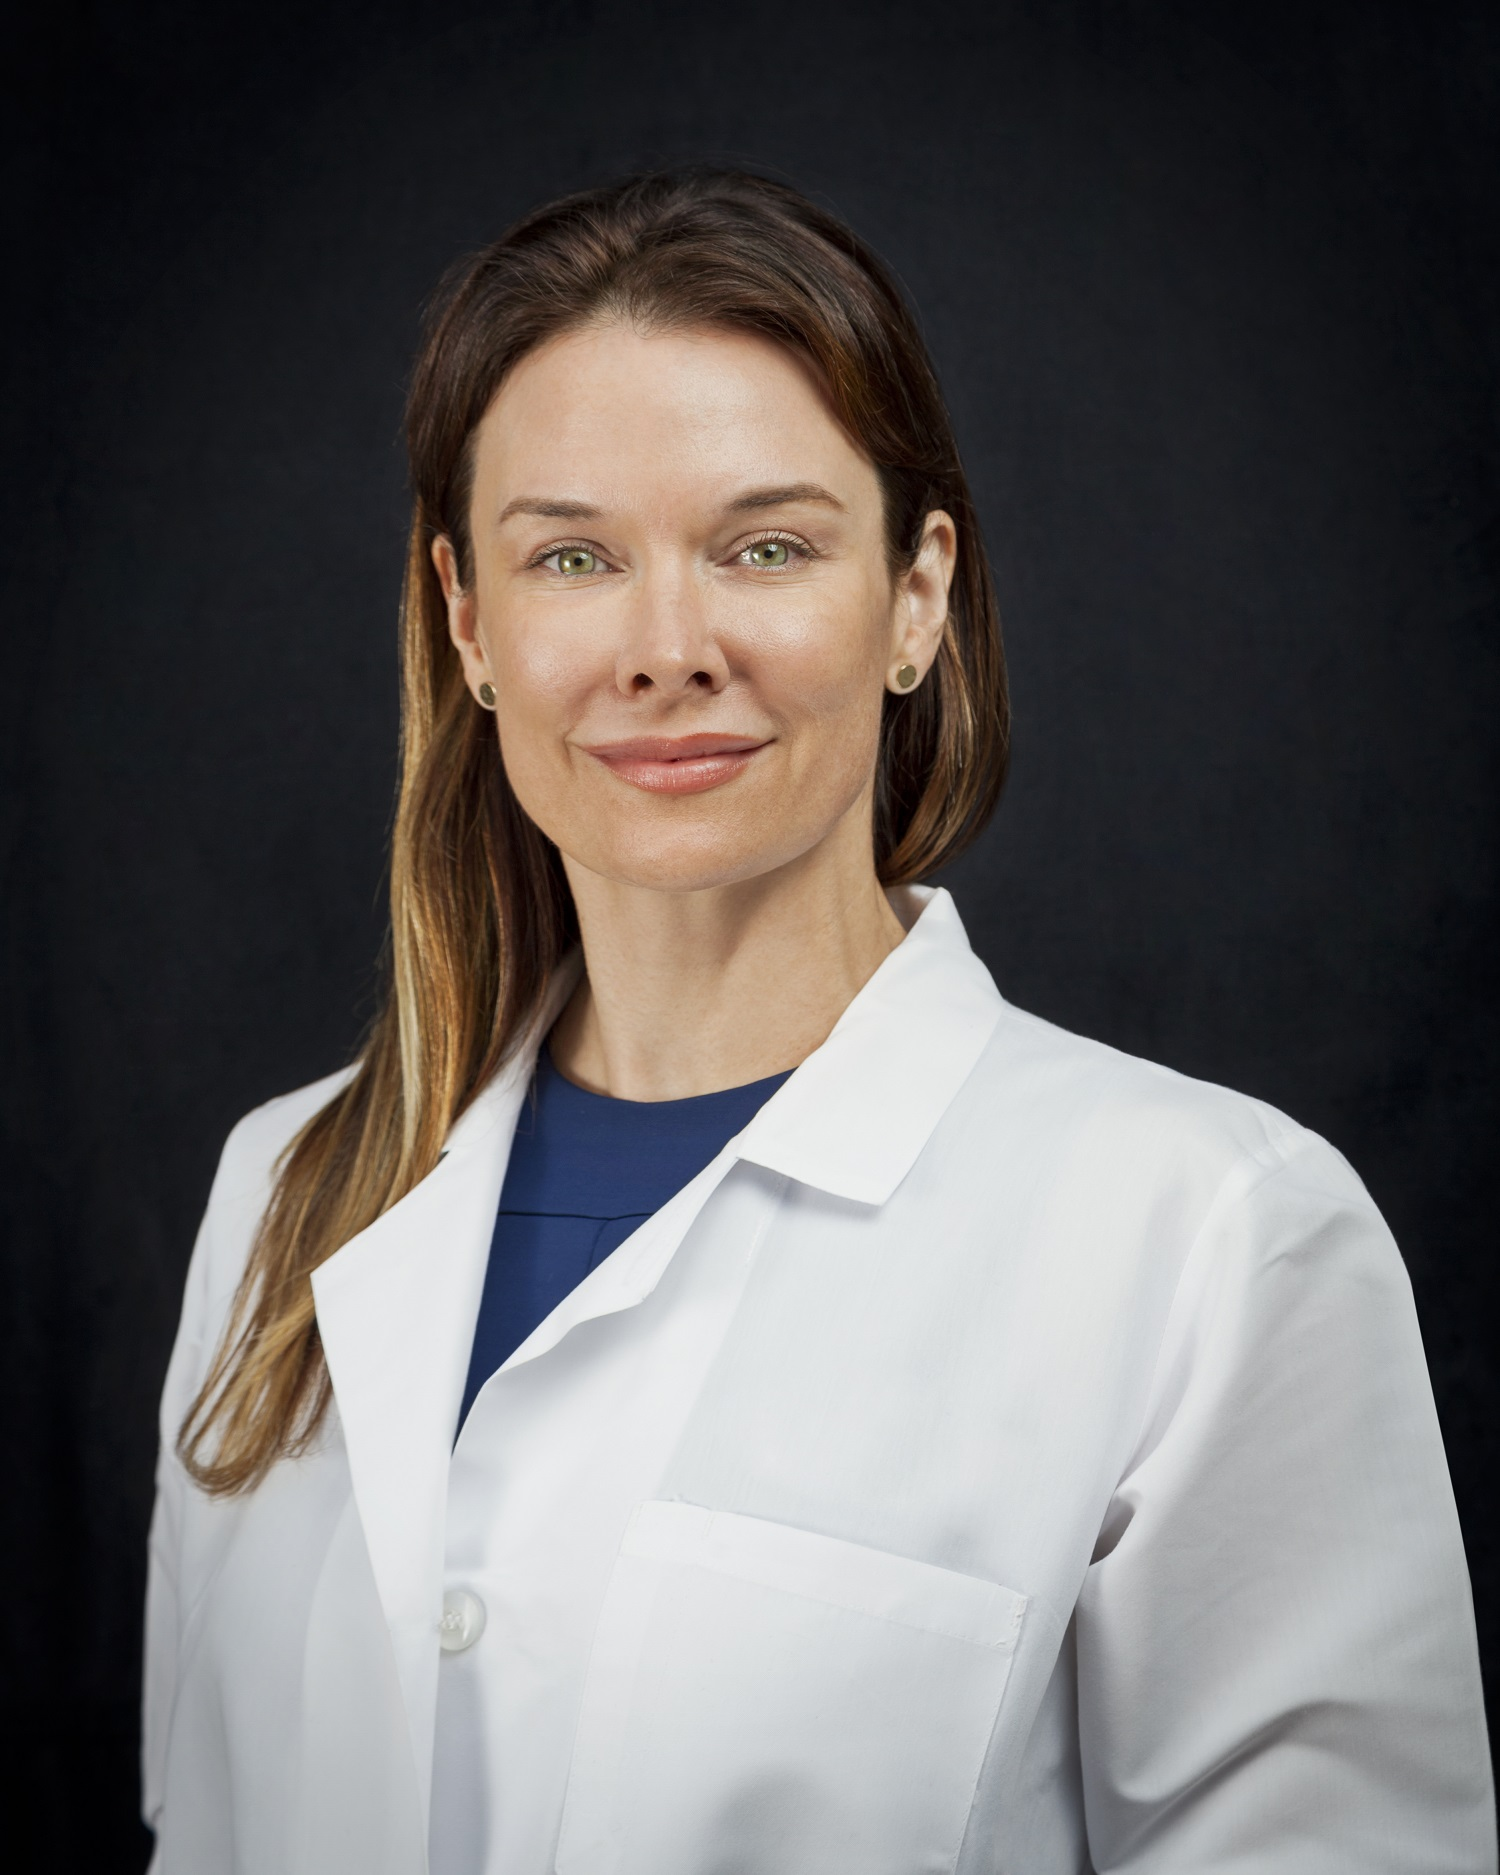 Whitney A. Burrell, MD